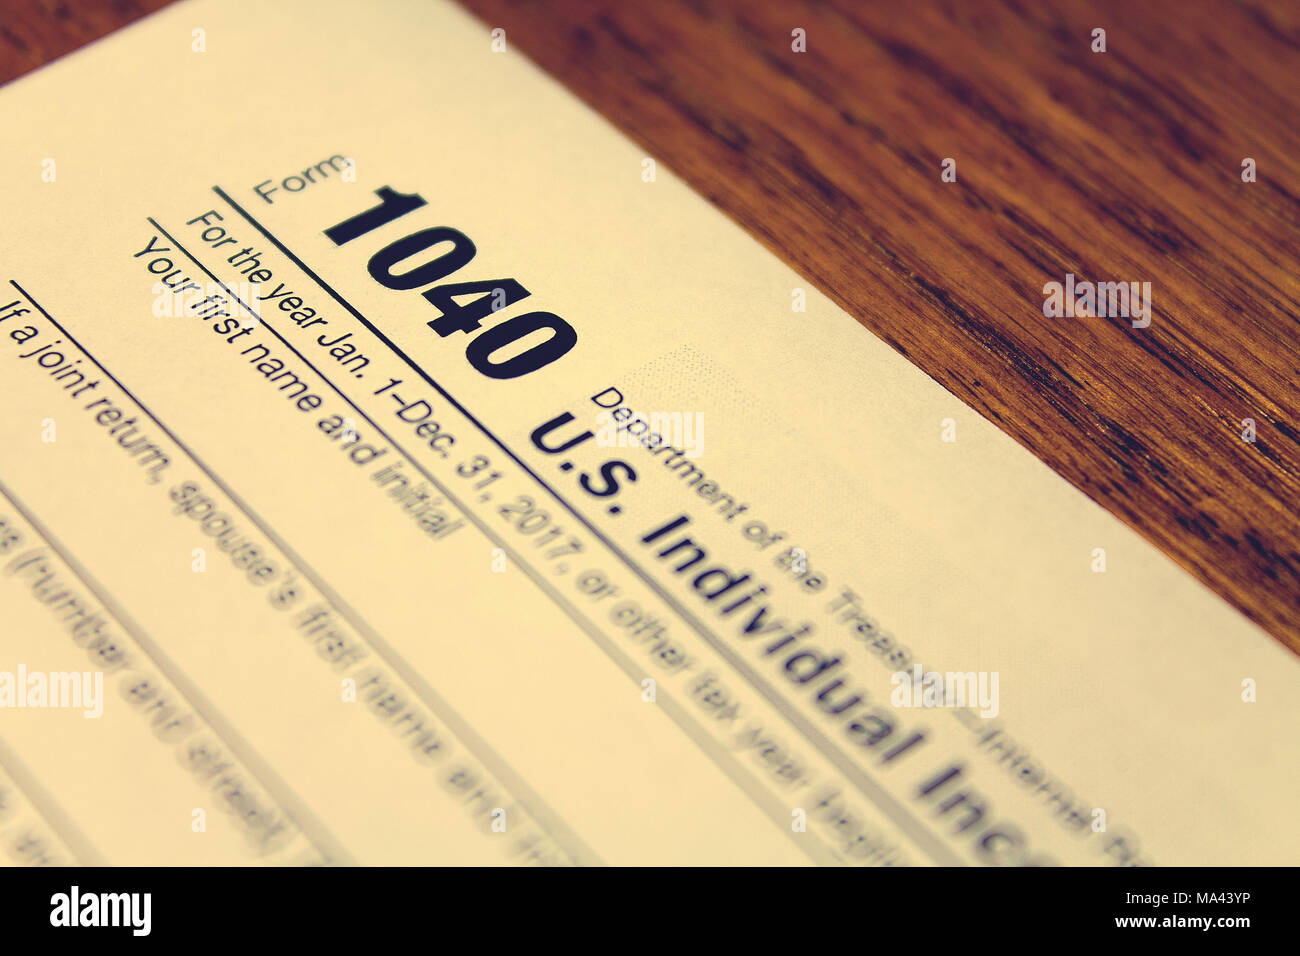 1040 income tax form stock photos 1040 income tax form stock tax day the tax form 1040 is on a wooden table stock image falaconquin